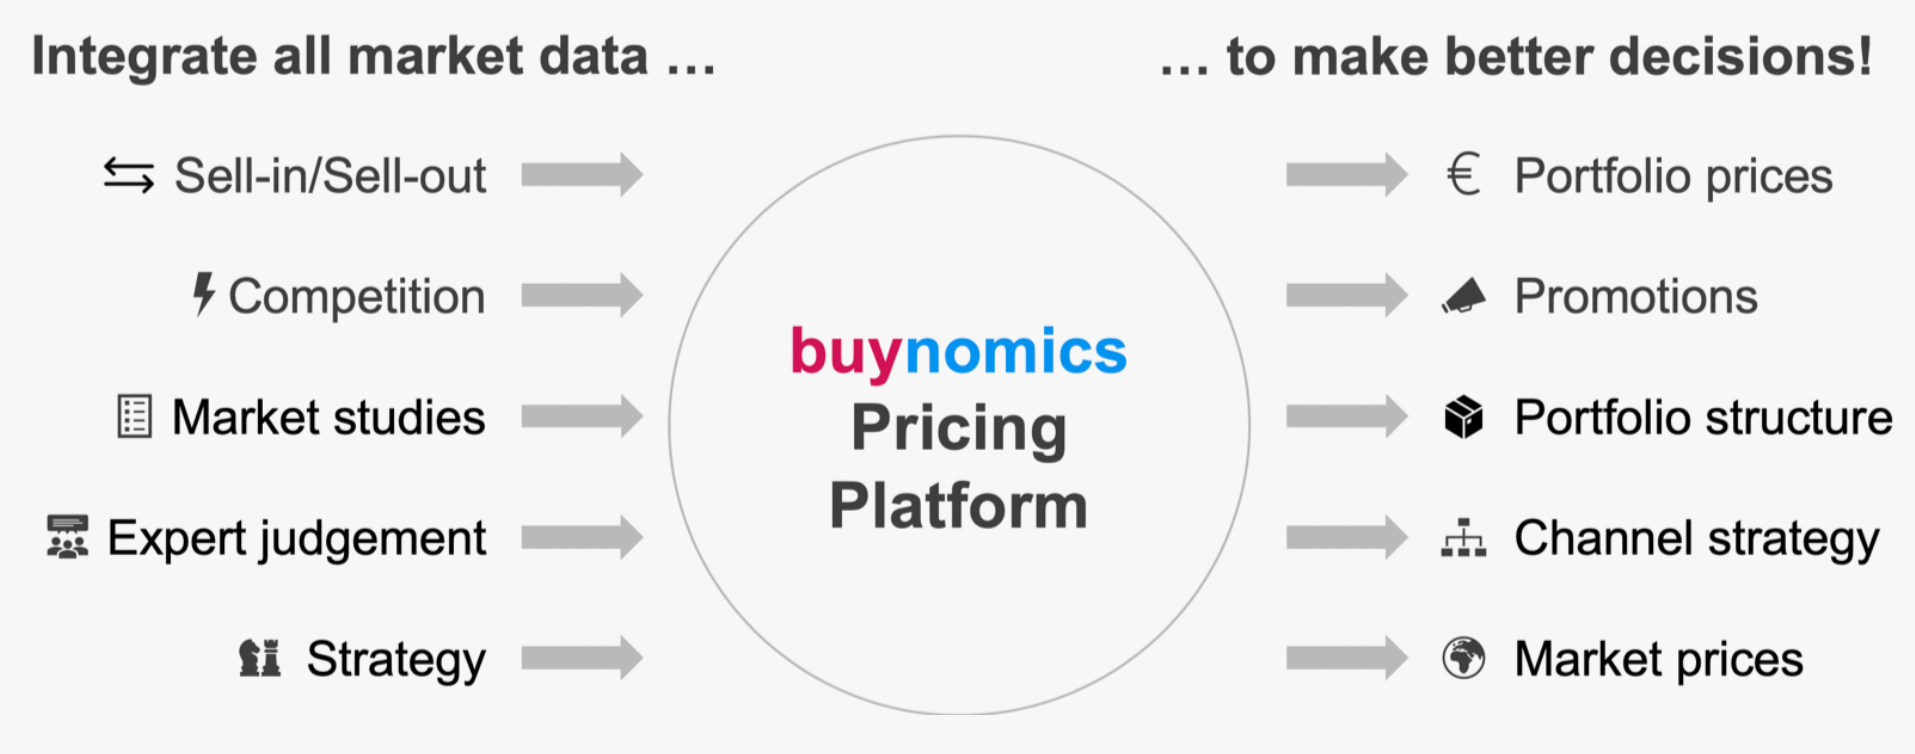 What buynomics can do for you